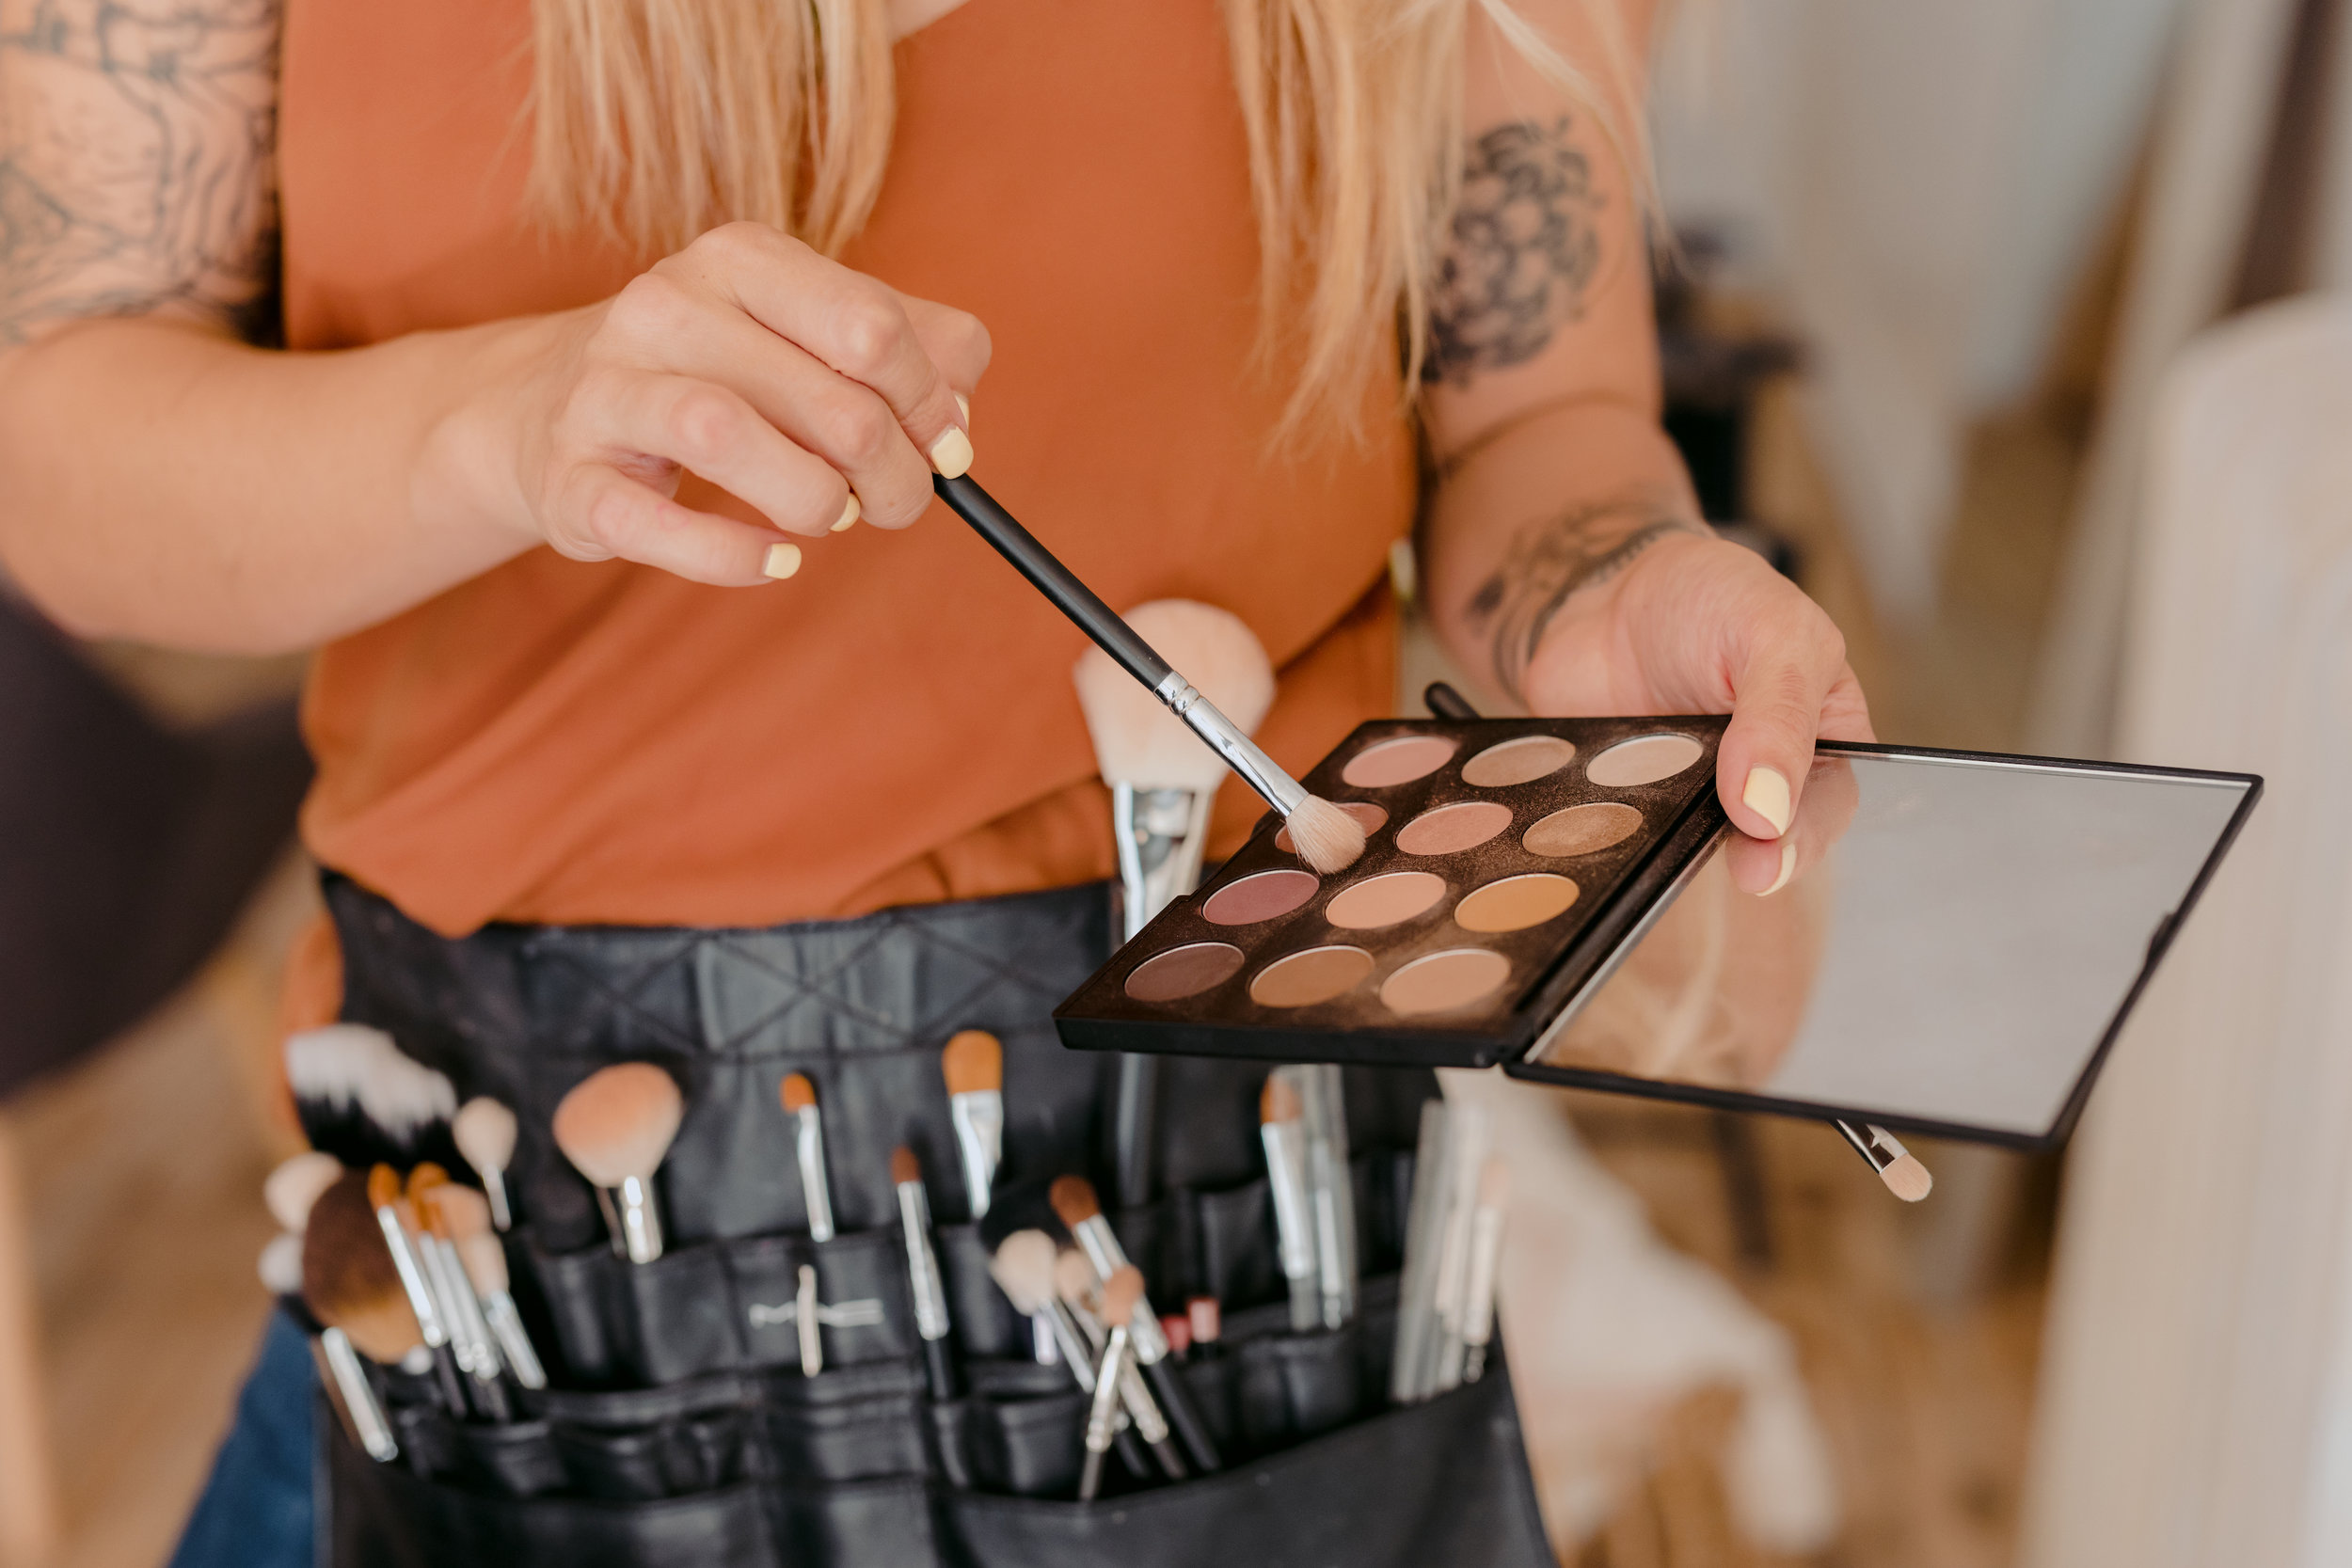 BRIDAL  - We offer private and group makeup sessions for everything from a wedding day glam squad to senior photos. We promise to help make your day effortless, beautiful and fun.